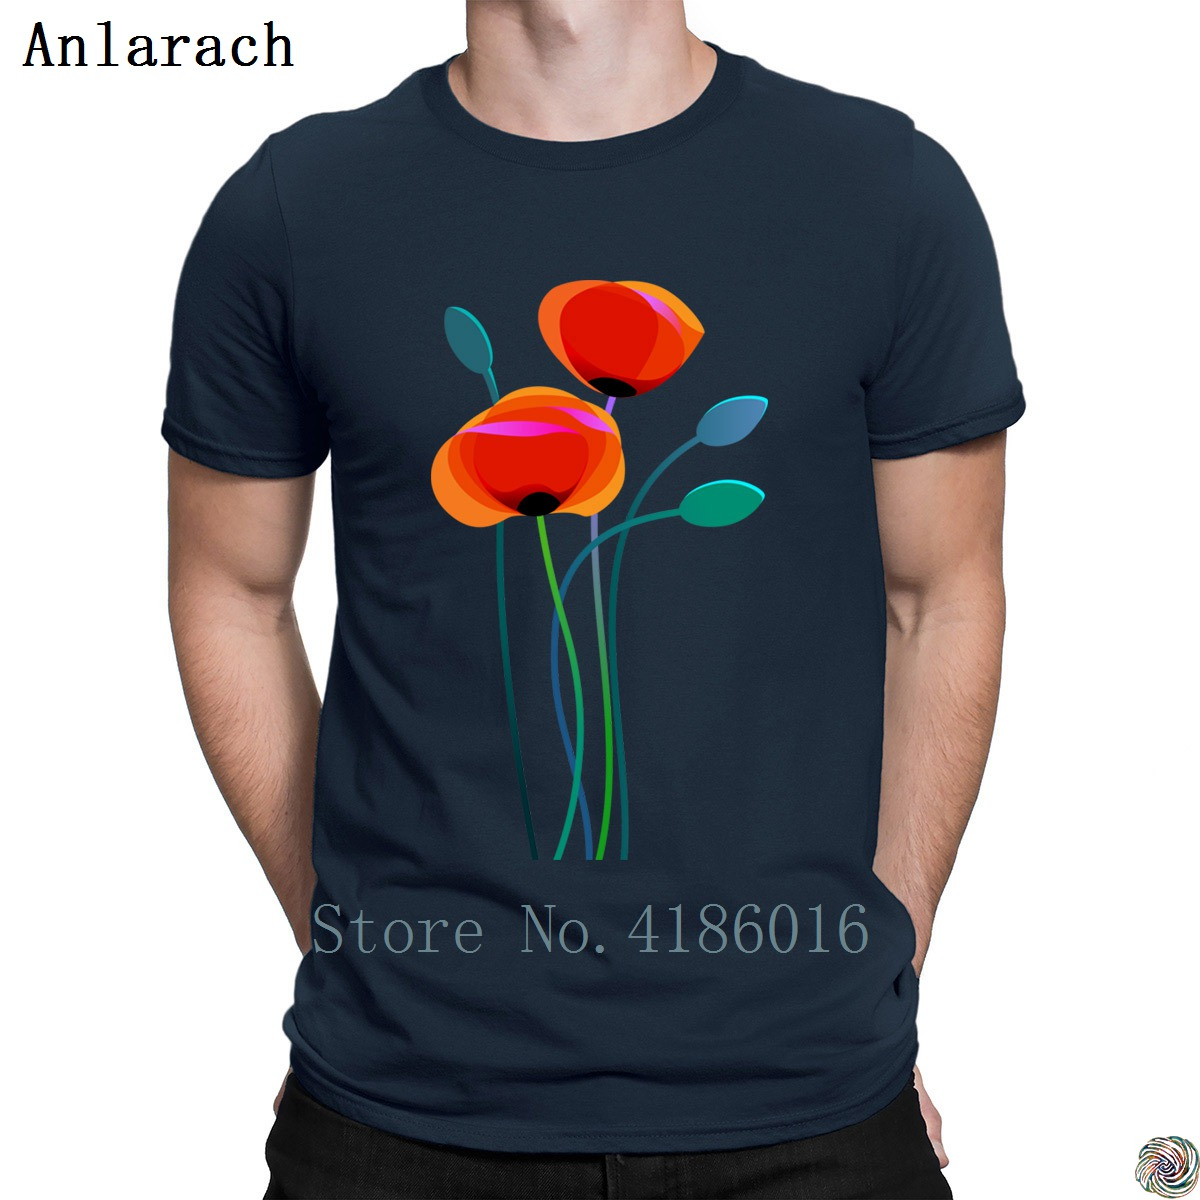 Poppy Flowers tshirts Tee top Designing Natural streetwear t shirt for men Graphic Short Sleeve Spring Autumn Casual